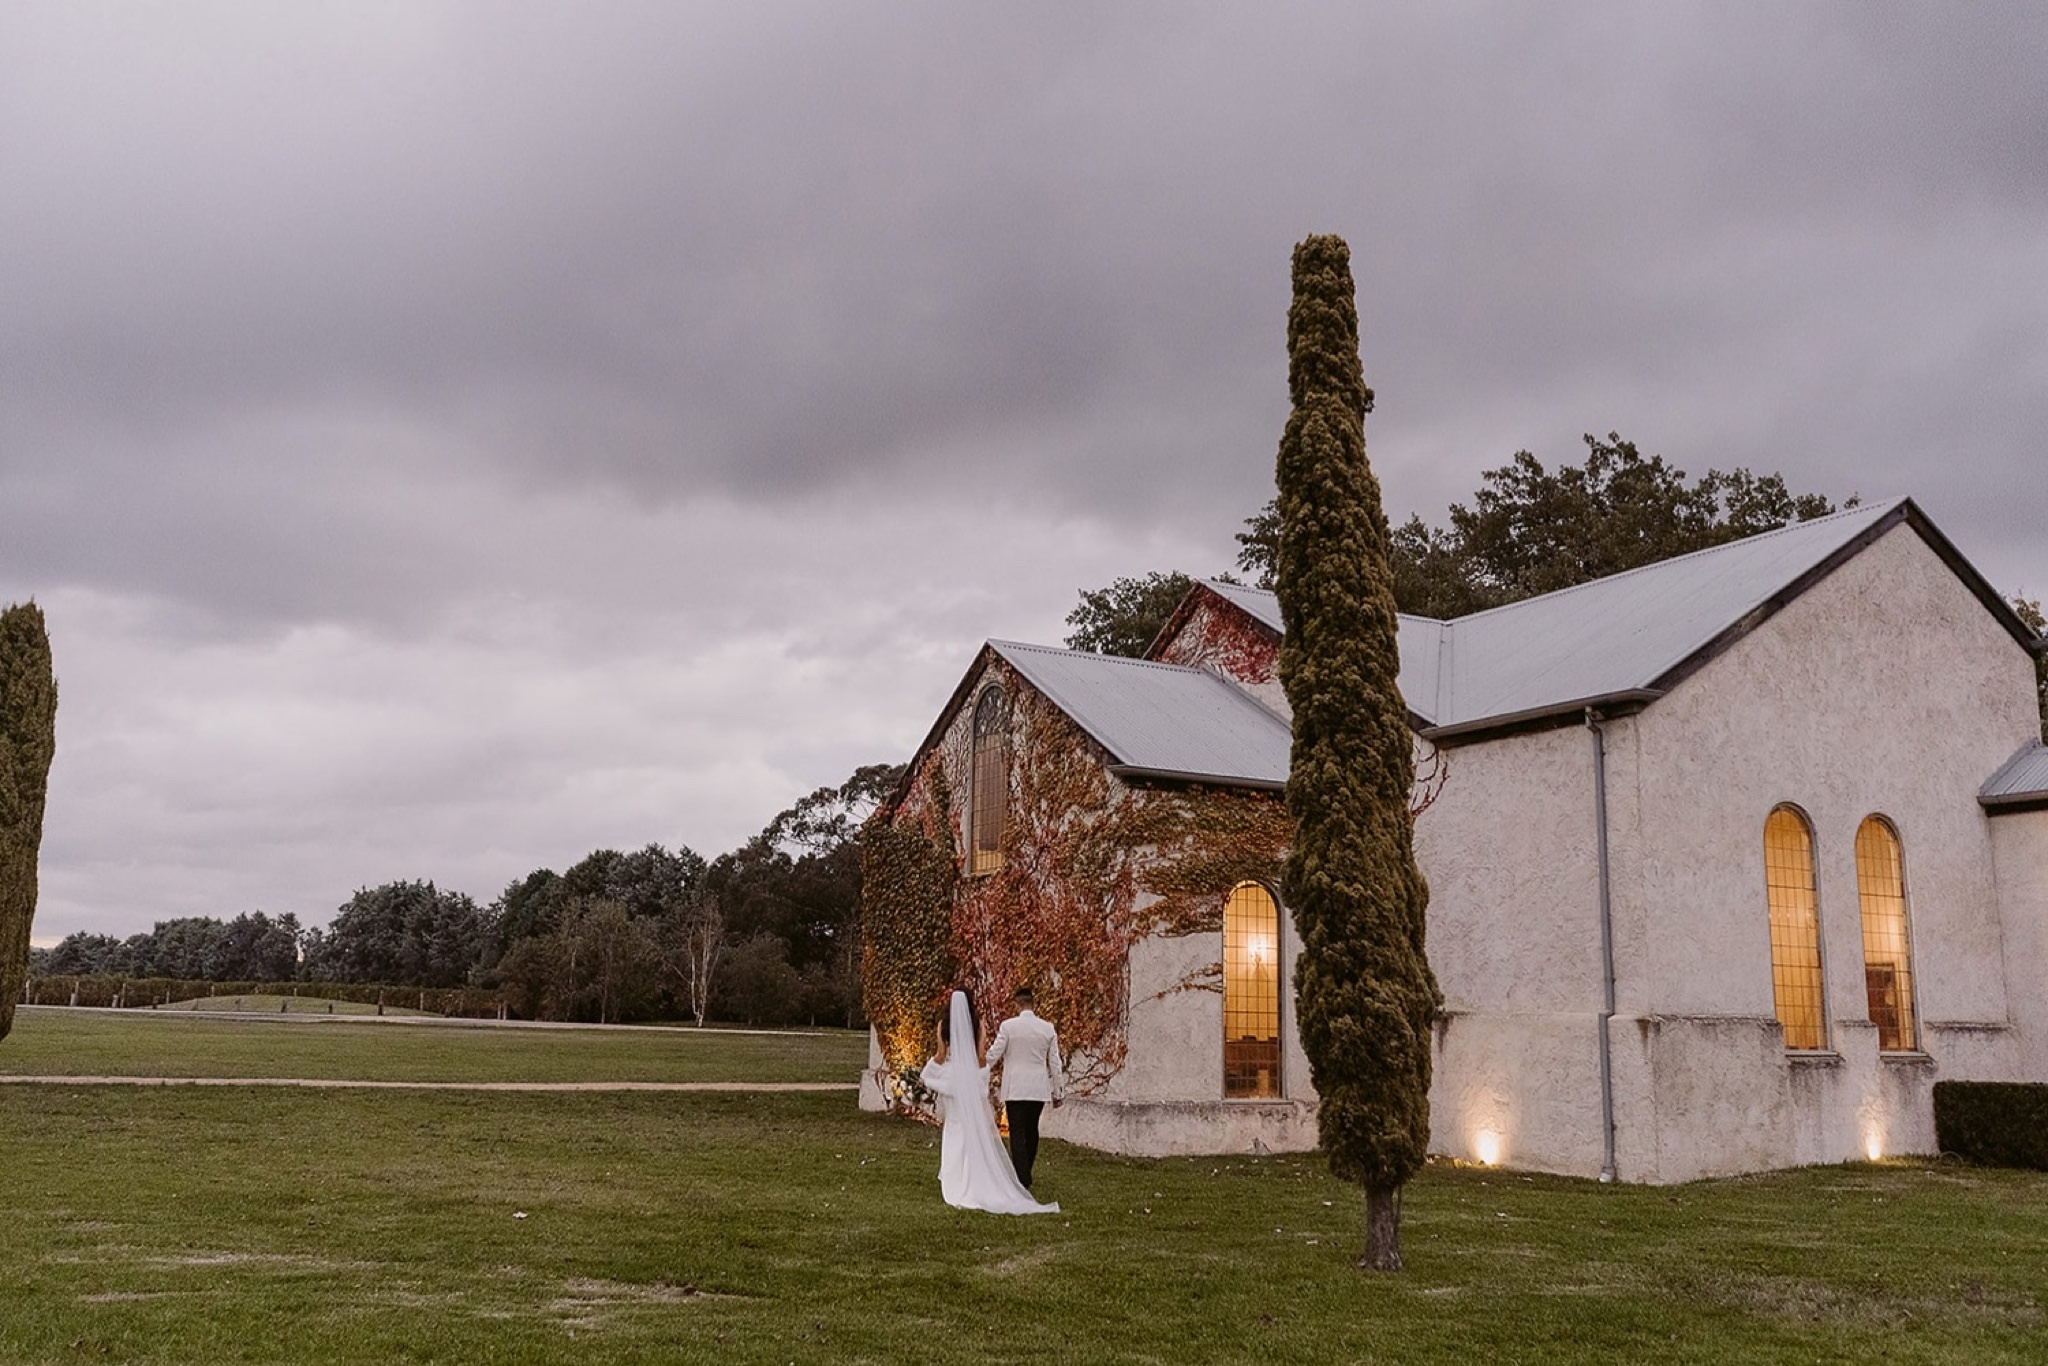 Stones of the Yarra Valley wedding photographer Ashleigh haase104.jpg